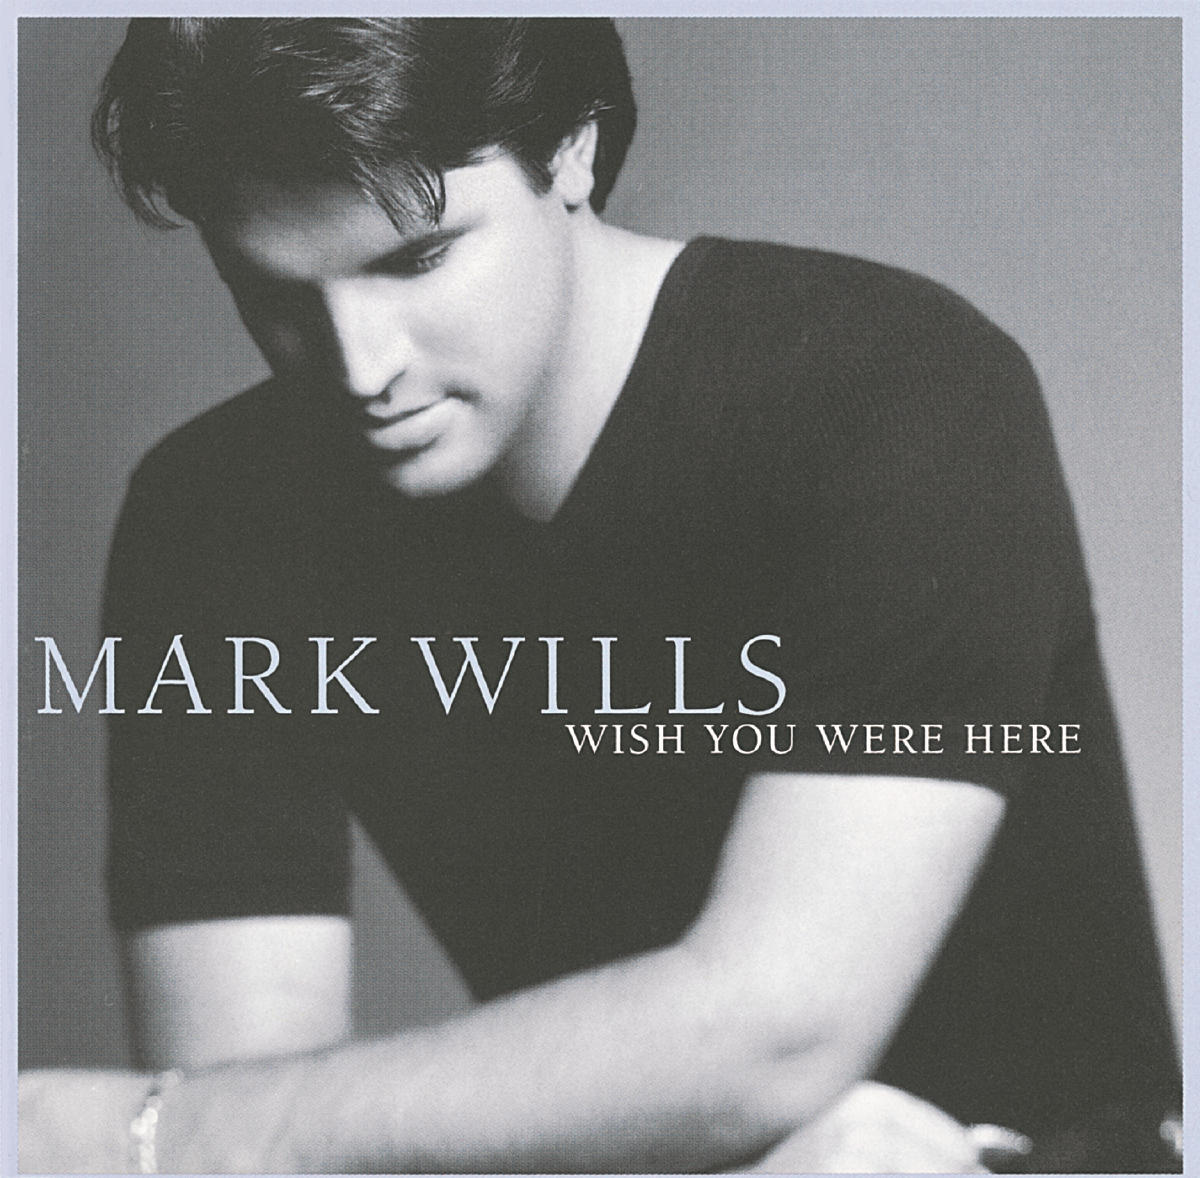 an analysis of dont laugh at me by mark wills Mark wills - don't laugh at me (música para ouvir e letra da música com legenda) don't laugh at me / don't call me names / don't get your pleasure from my pain / in god's eyes we're all the same.